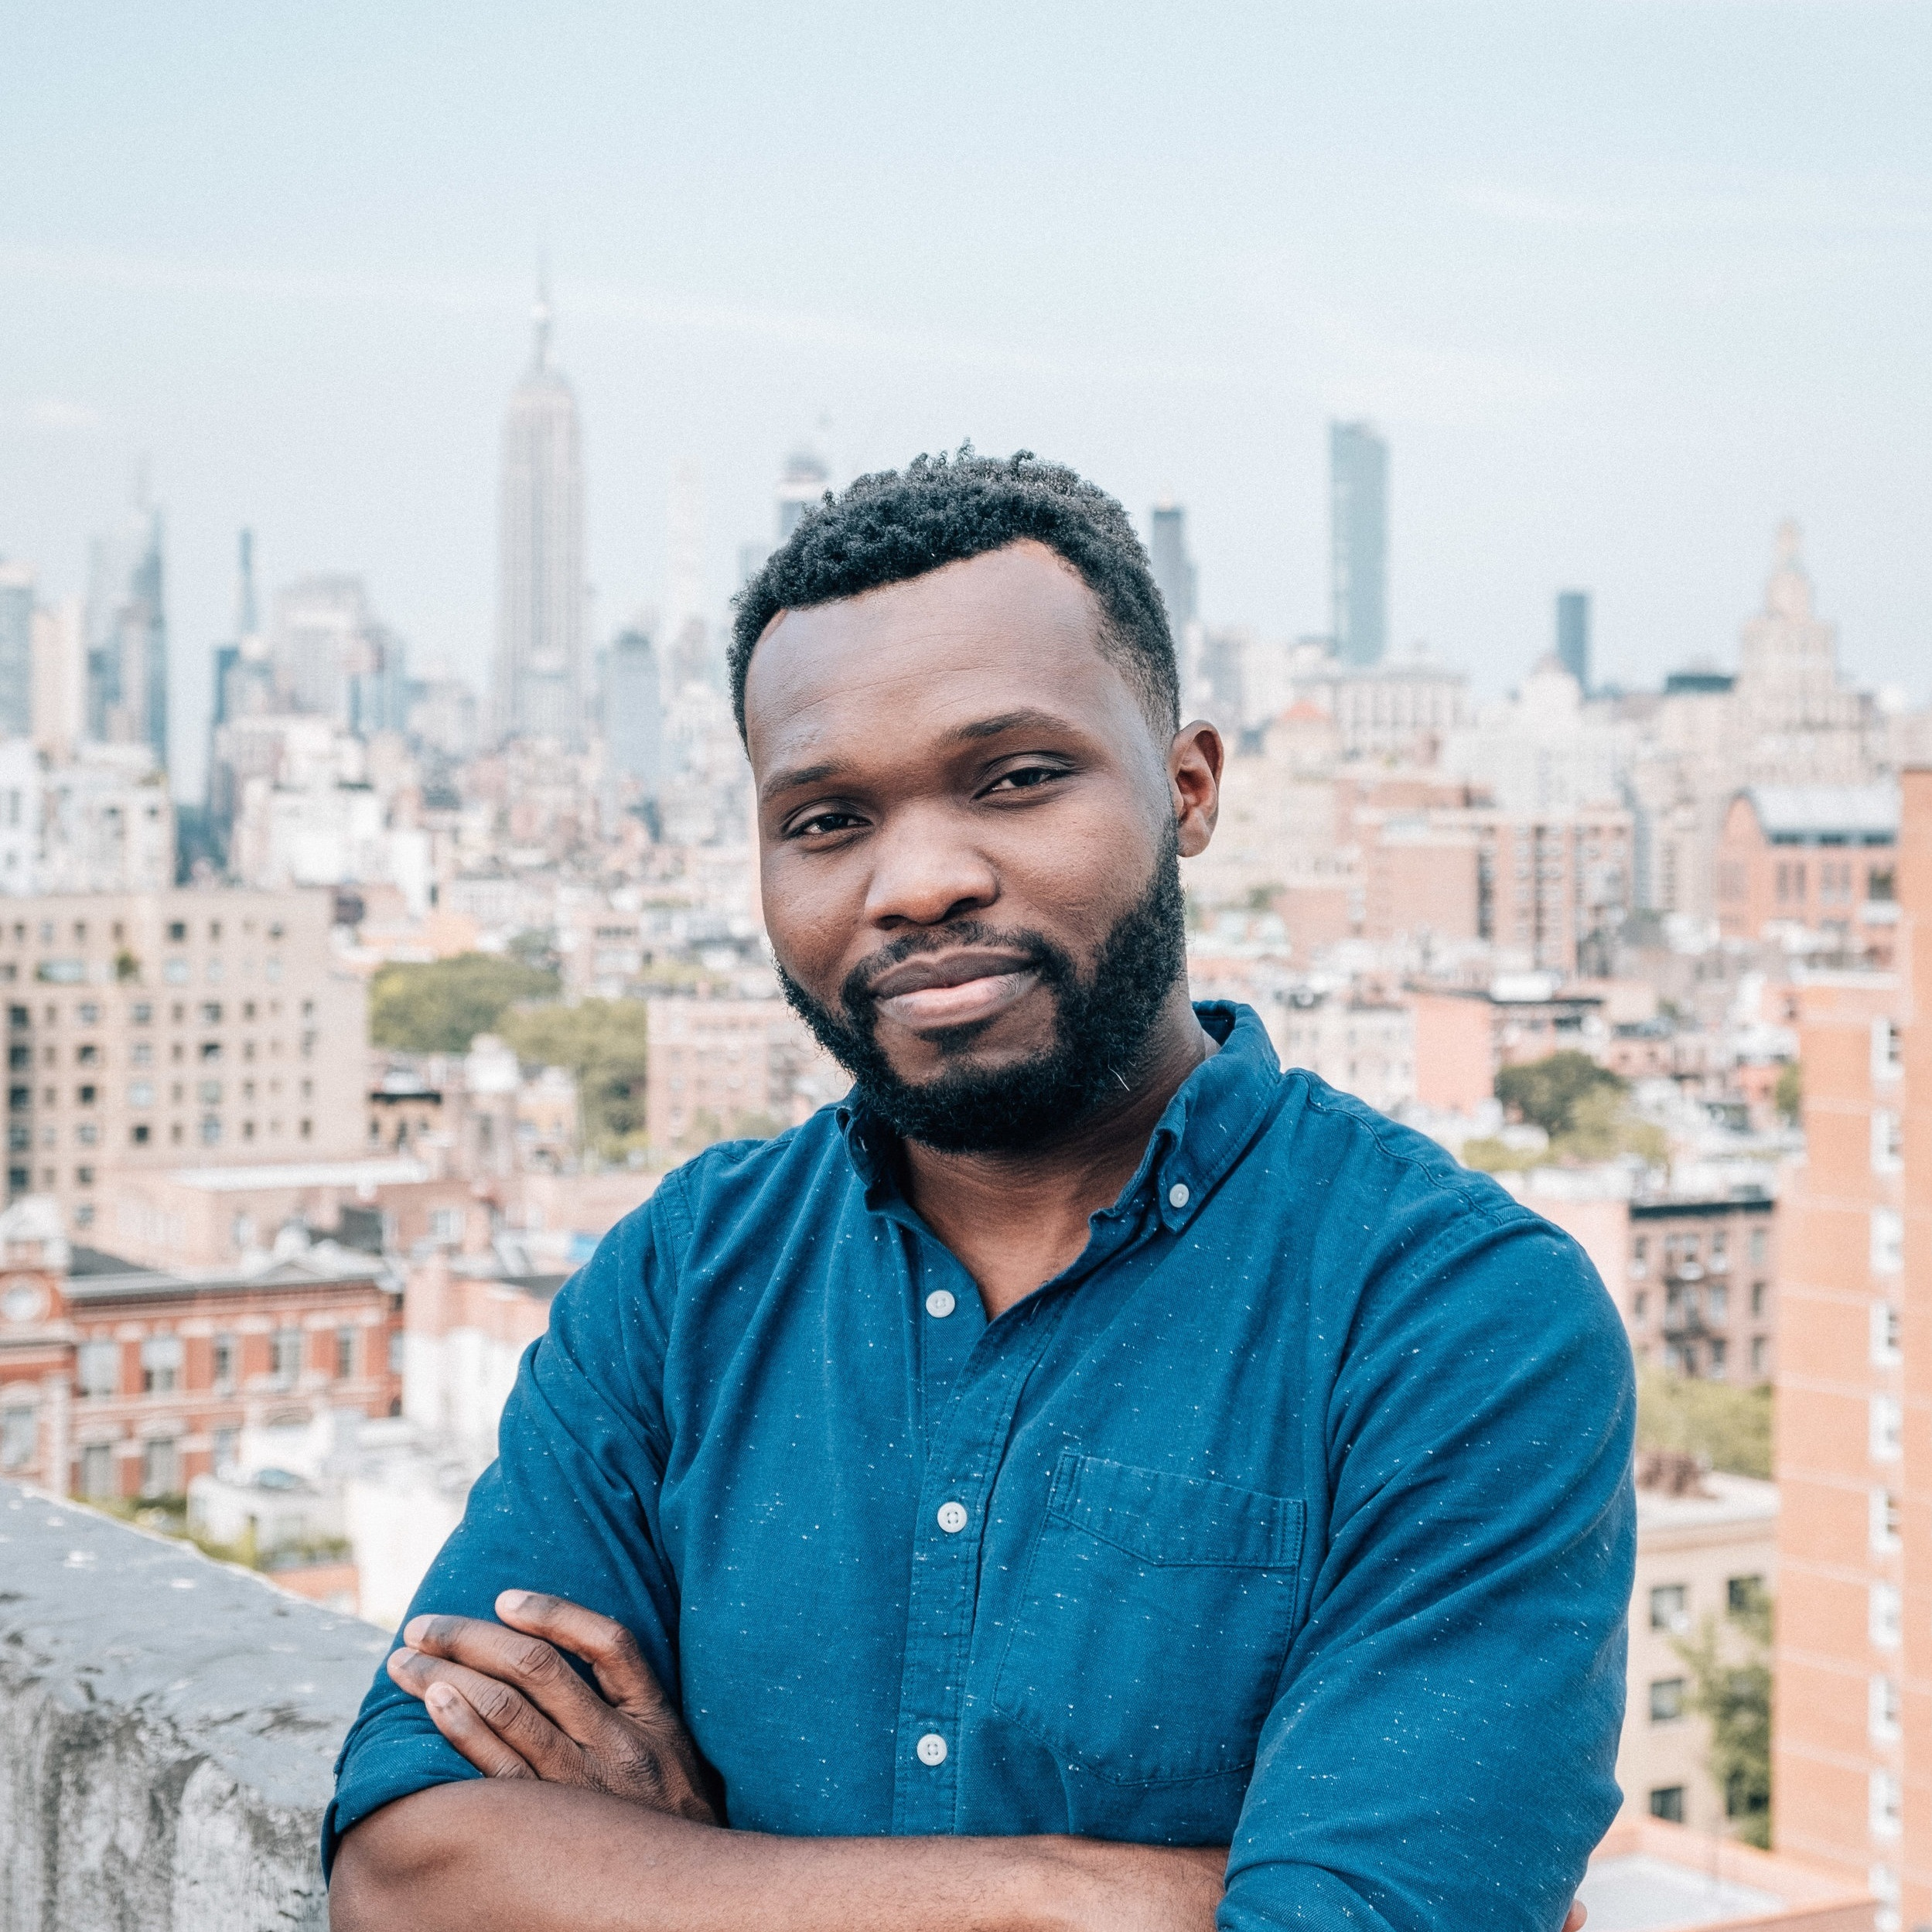 Michael Nartey - Project Manager, Associatemnartey@inc.nycMichael Nartey was born in Ghana and raised in New York City, he went on to study at Syracuse University School of Architecture. After receiving his undergraduate degree from Syracuse, he joined INC in 2010.While working with INC, Michael has been involved from conception to realization on several high-end residential and commercial projects at various scales. His background in architecture coupled with experience working on interior projects at INC has allowed him to partake in a wide range of design problems. His interests lie within the fabrication techniques of not only architectural and interior design concepts, but also sculpture and furniture design.Outside of INC, Michael has been developing this interest by engaging in the fabrication of bespoke design projects.